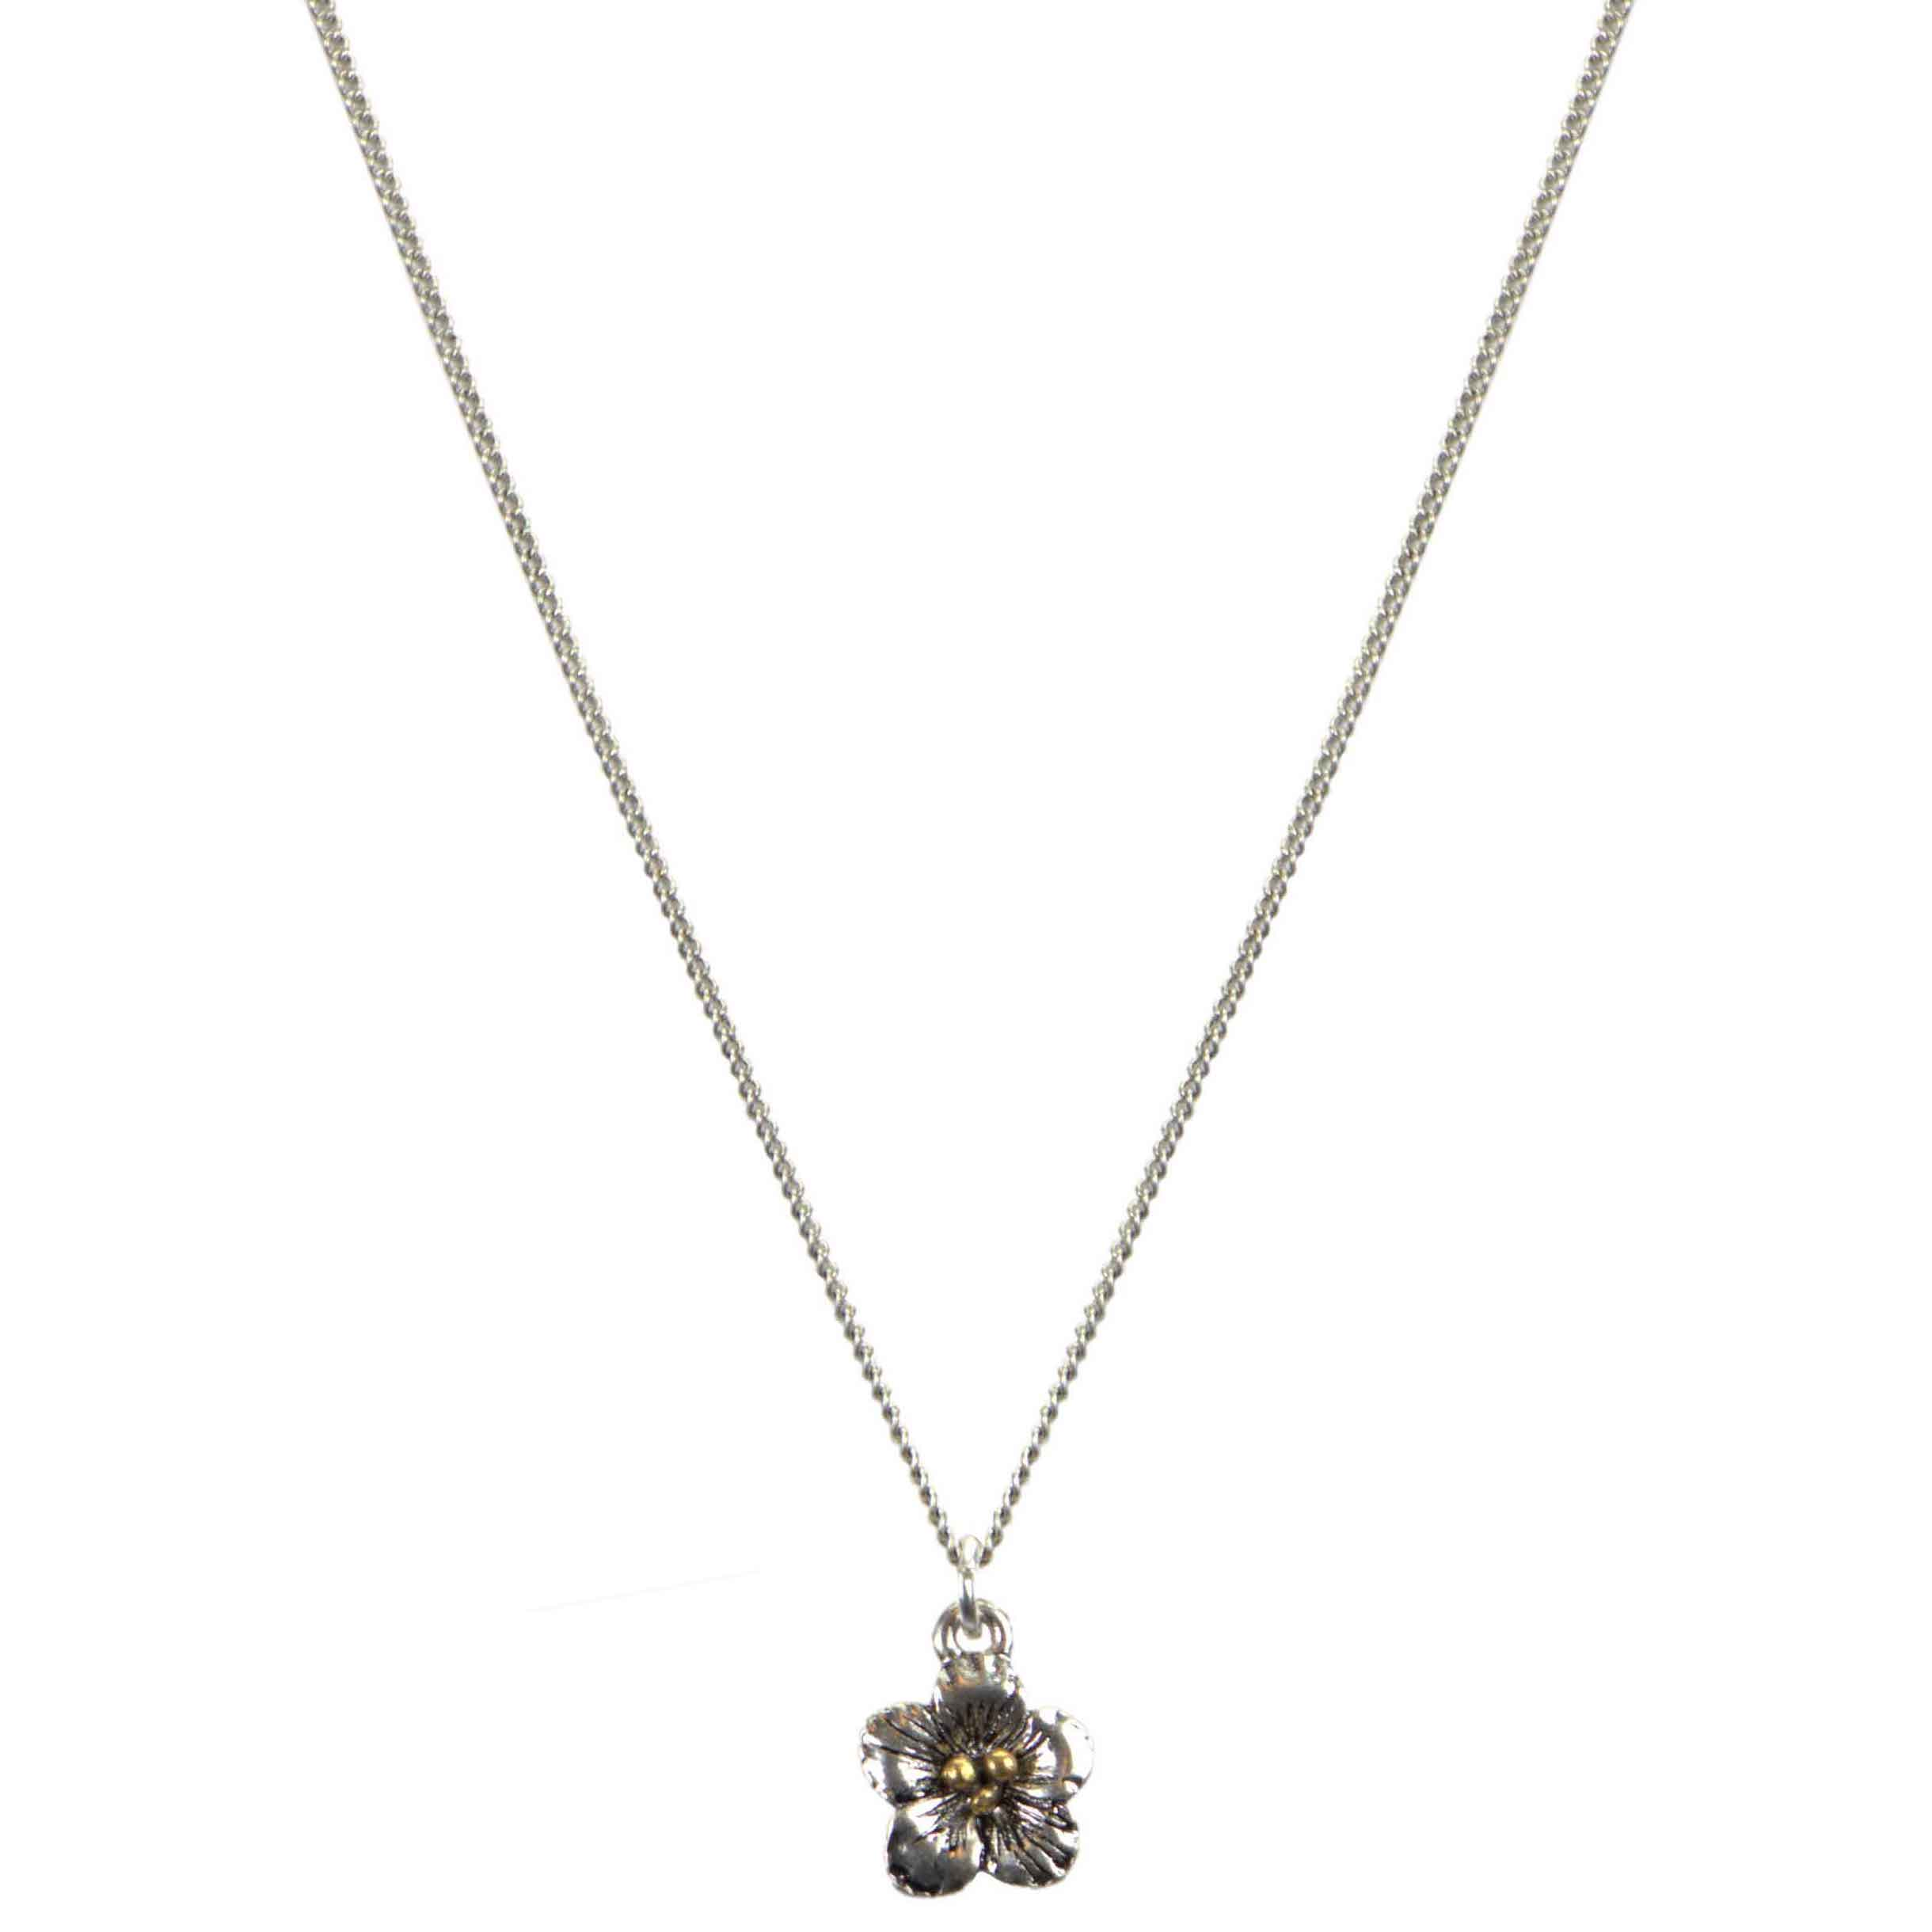 Hultquist Flower Pendant Necklace BiColour 04615-BI